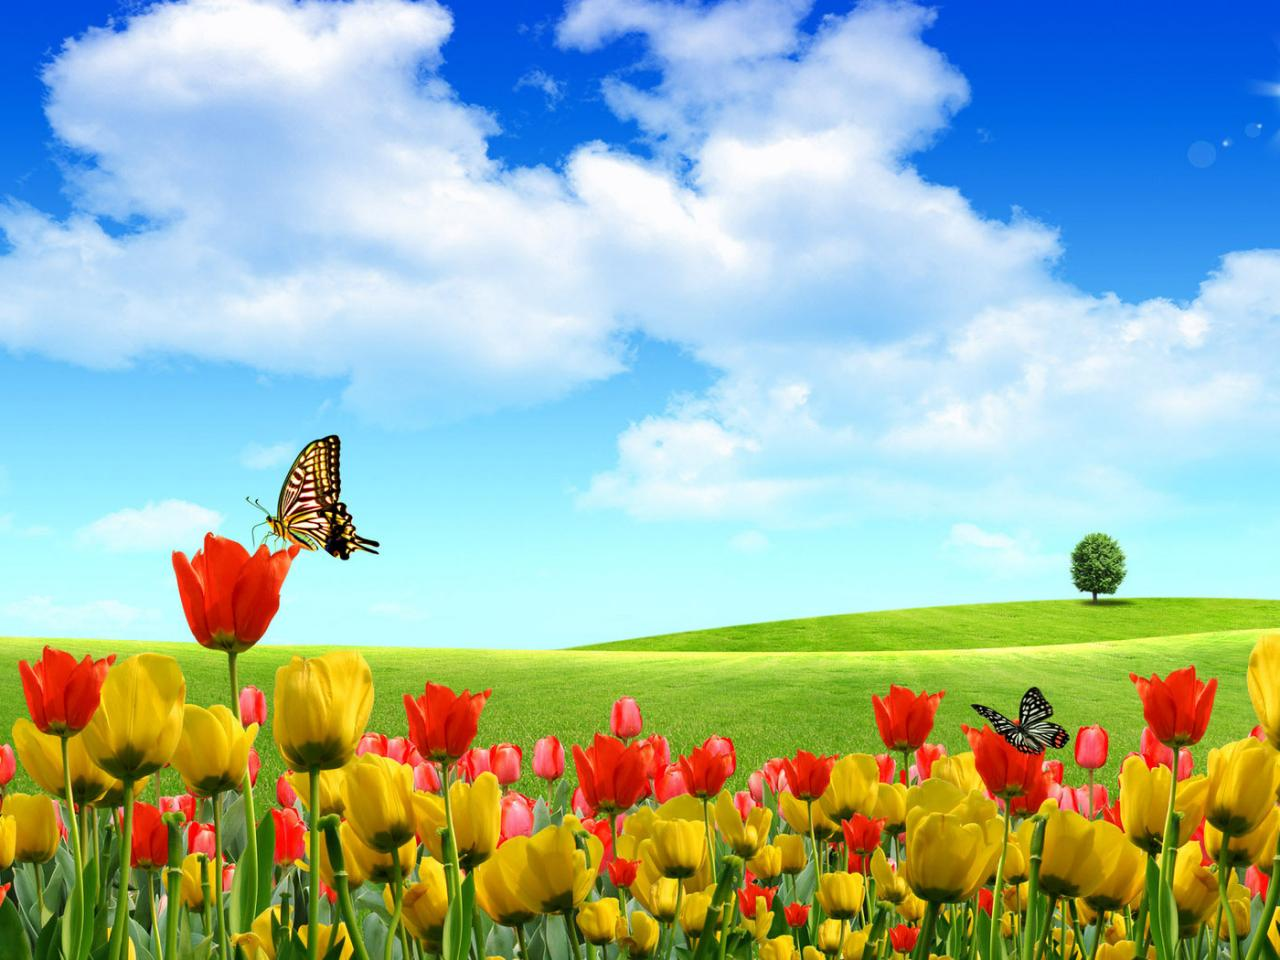 Beautiful flowers landscape wallpaper 1280x960 For 17-inch wallpaper download,background image,wallpaper and Online Stock Photo Images